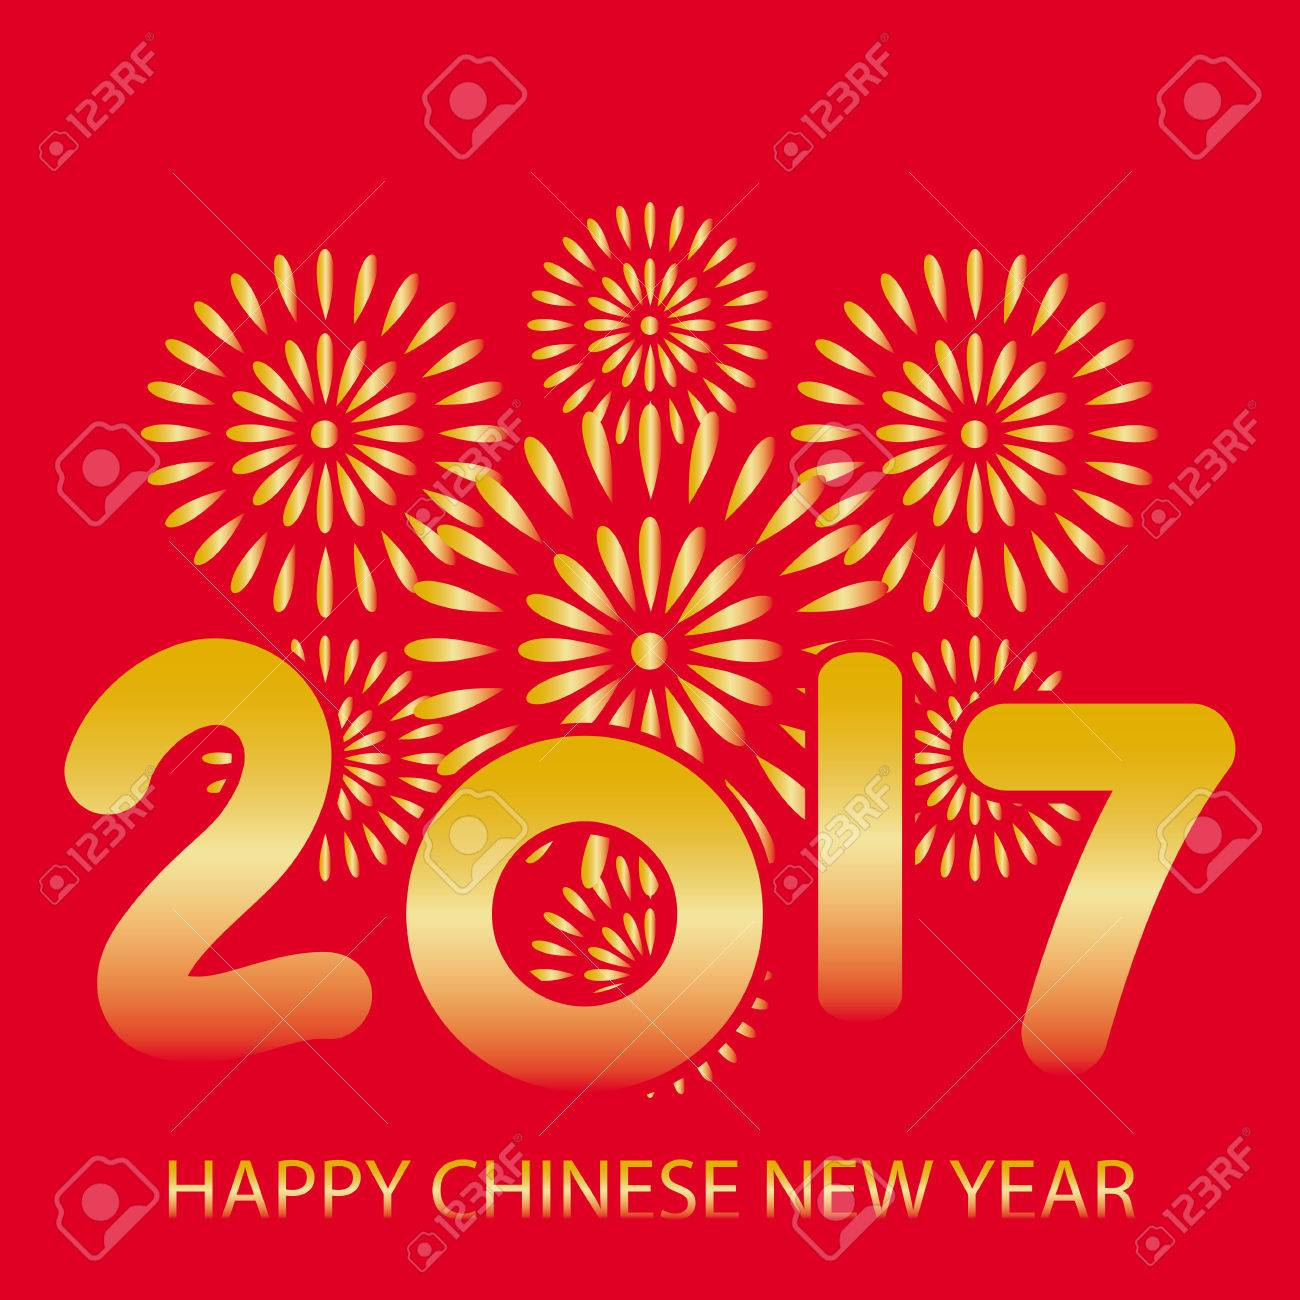 2017 happy chinese new year greeting card with fireworks gold 2017 happy chinese new year greeting card with fireworks gold celebration on red background stock vector m4hsunfo